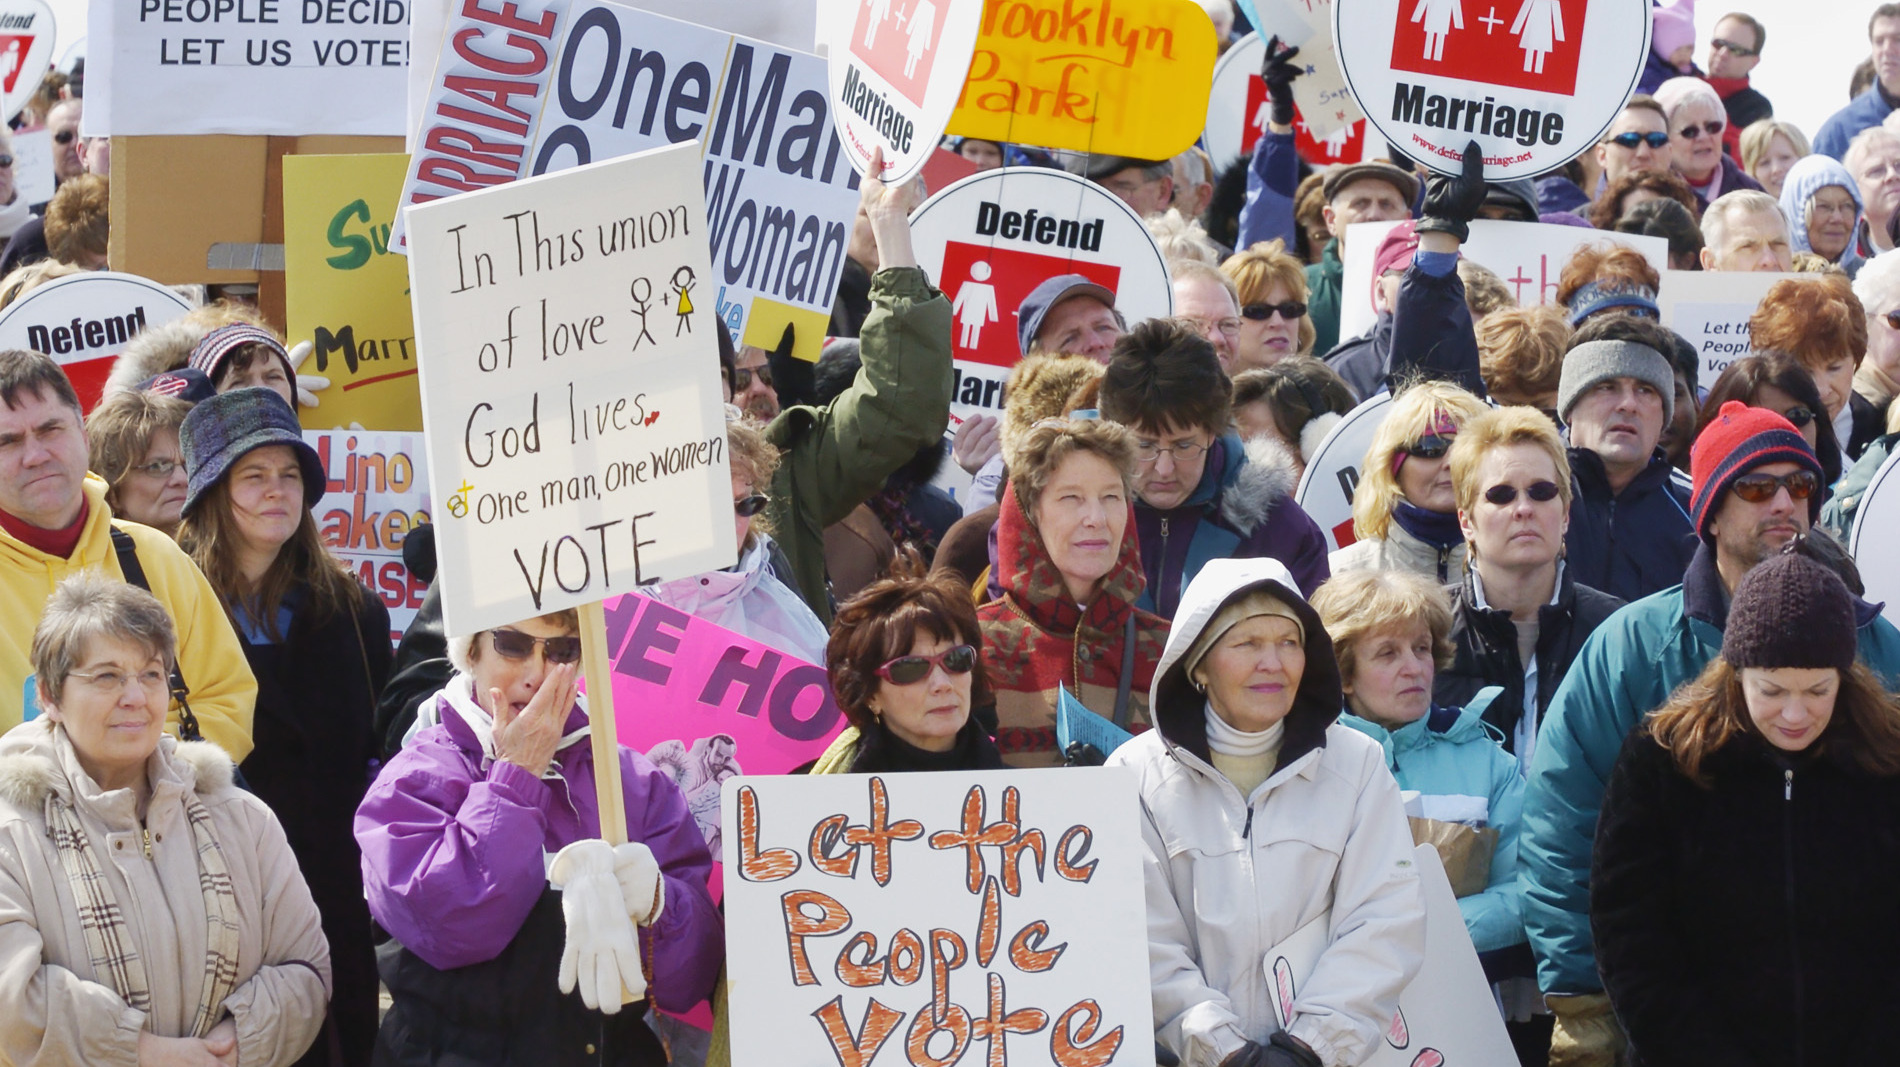 Demonstrators rally in support of what they call traditional marriage on March 21, 2006, at the State Capitol in St. Paul, Minn.